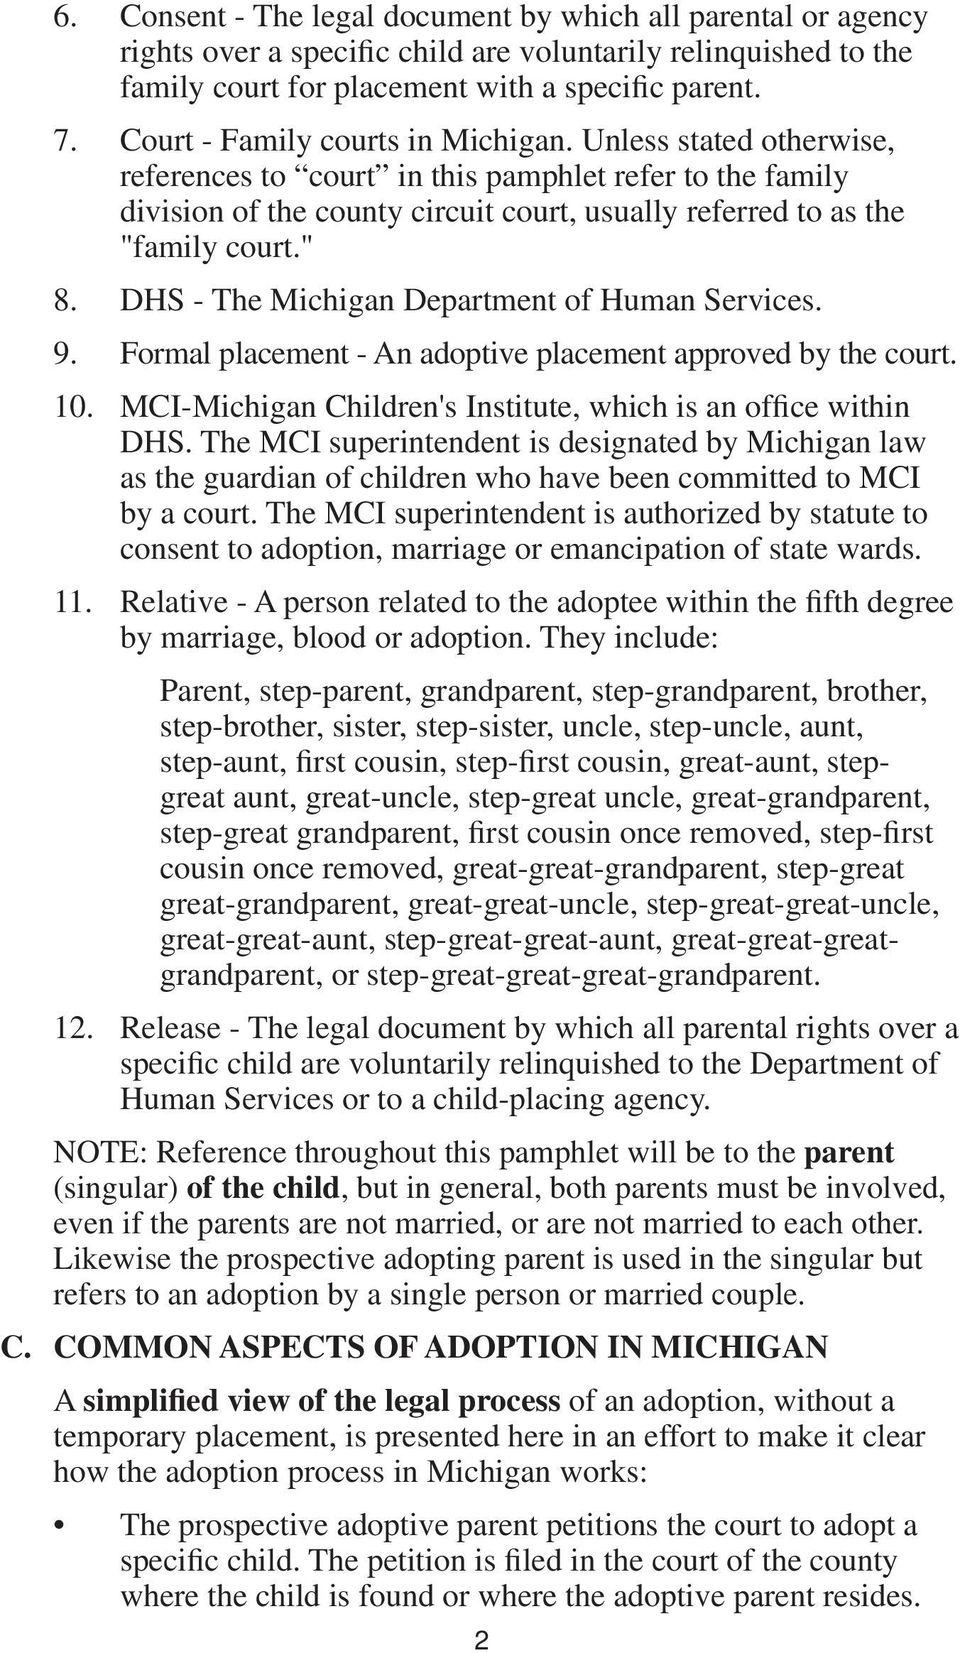 DHS - The Michigan Department of Human Services. 9. Formal placement - An adoptive placement approved by the court. 10. MCI-Michigan Children's Institute, which is an office within DHS.